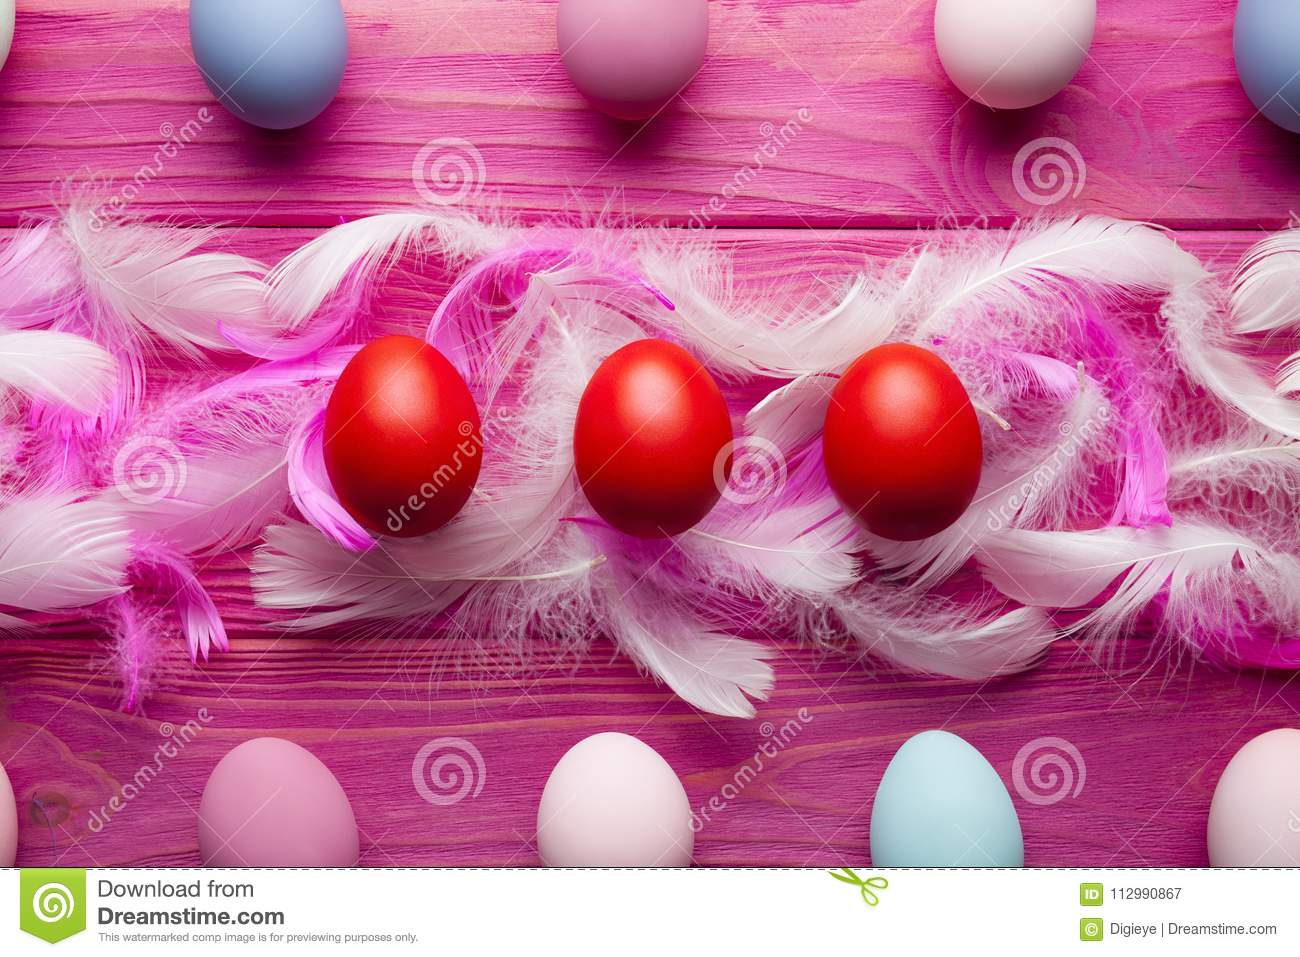 Easter background - colored eggs and feathers on pink background